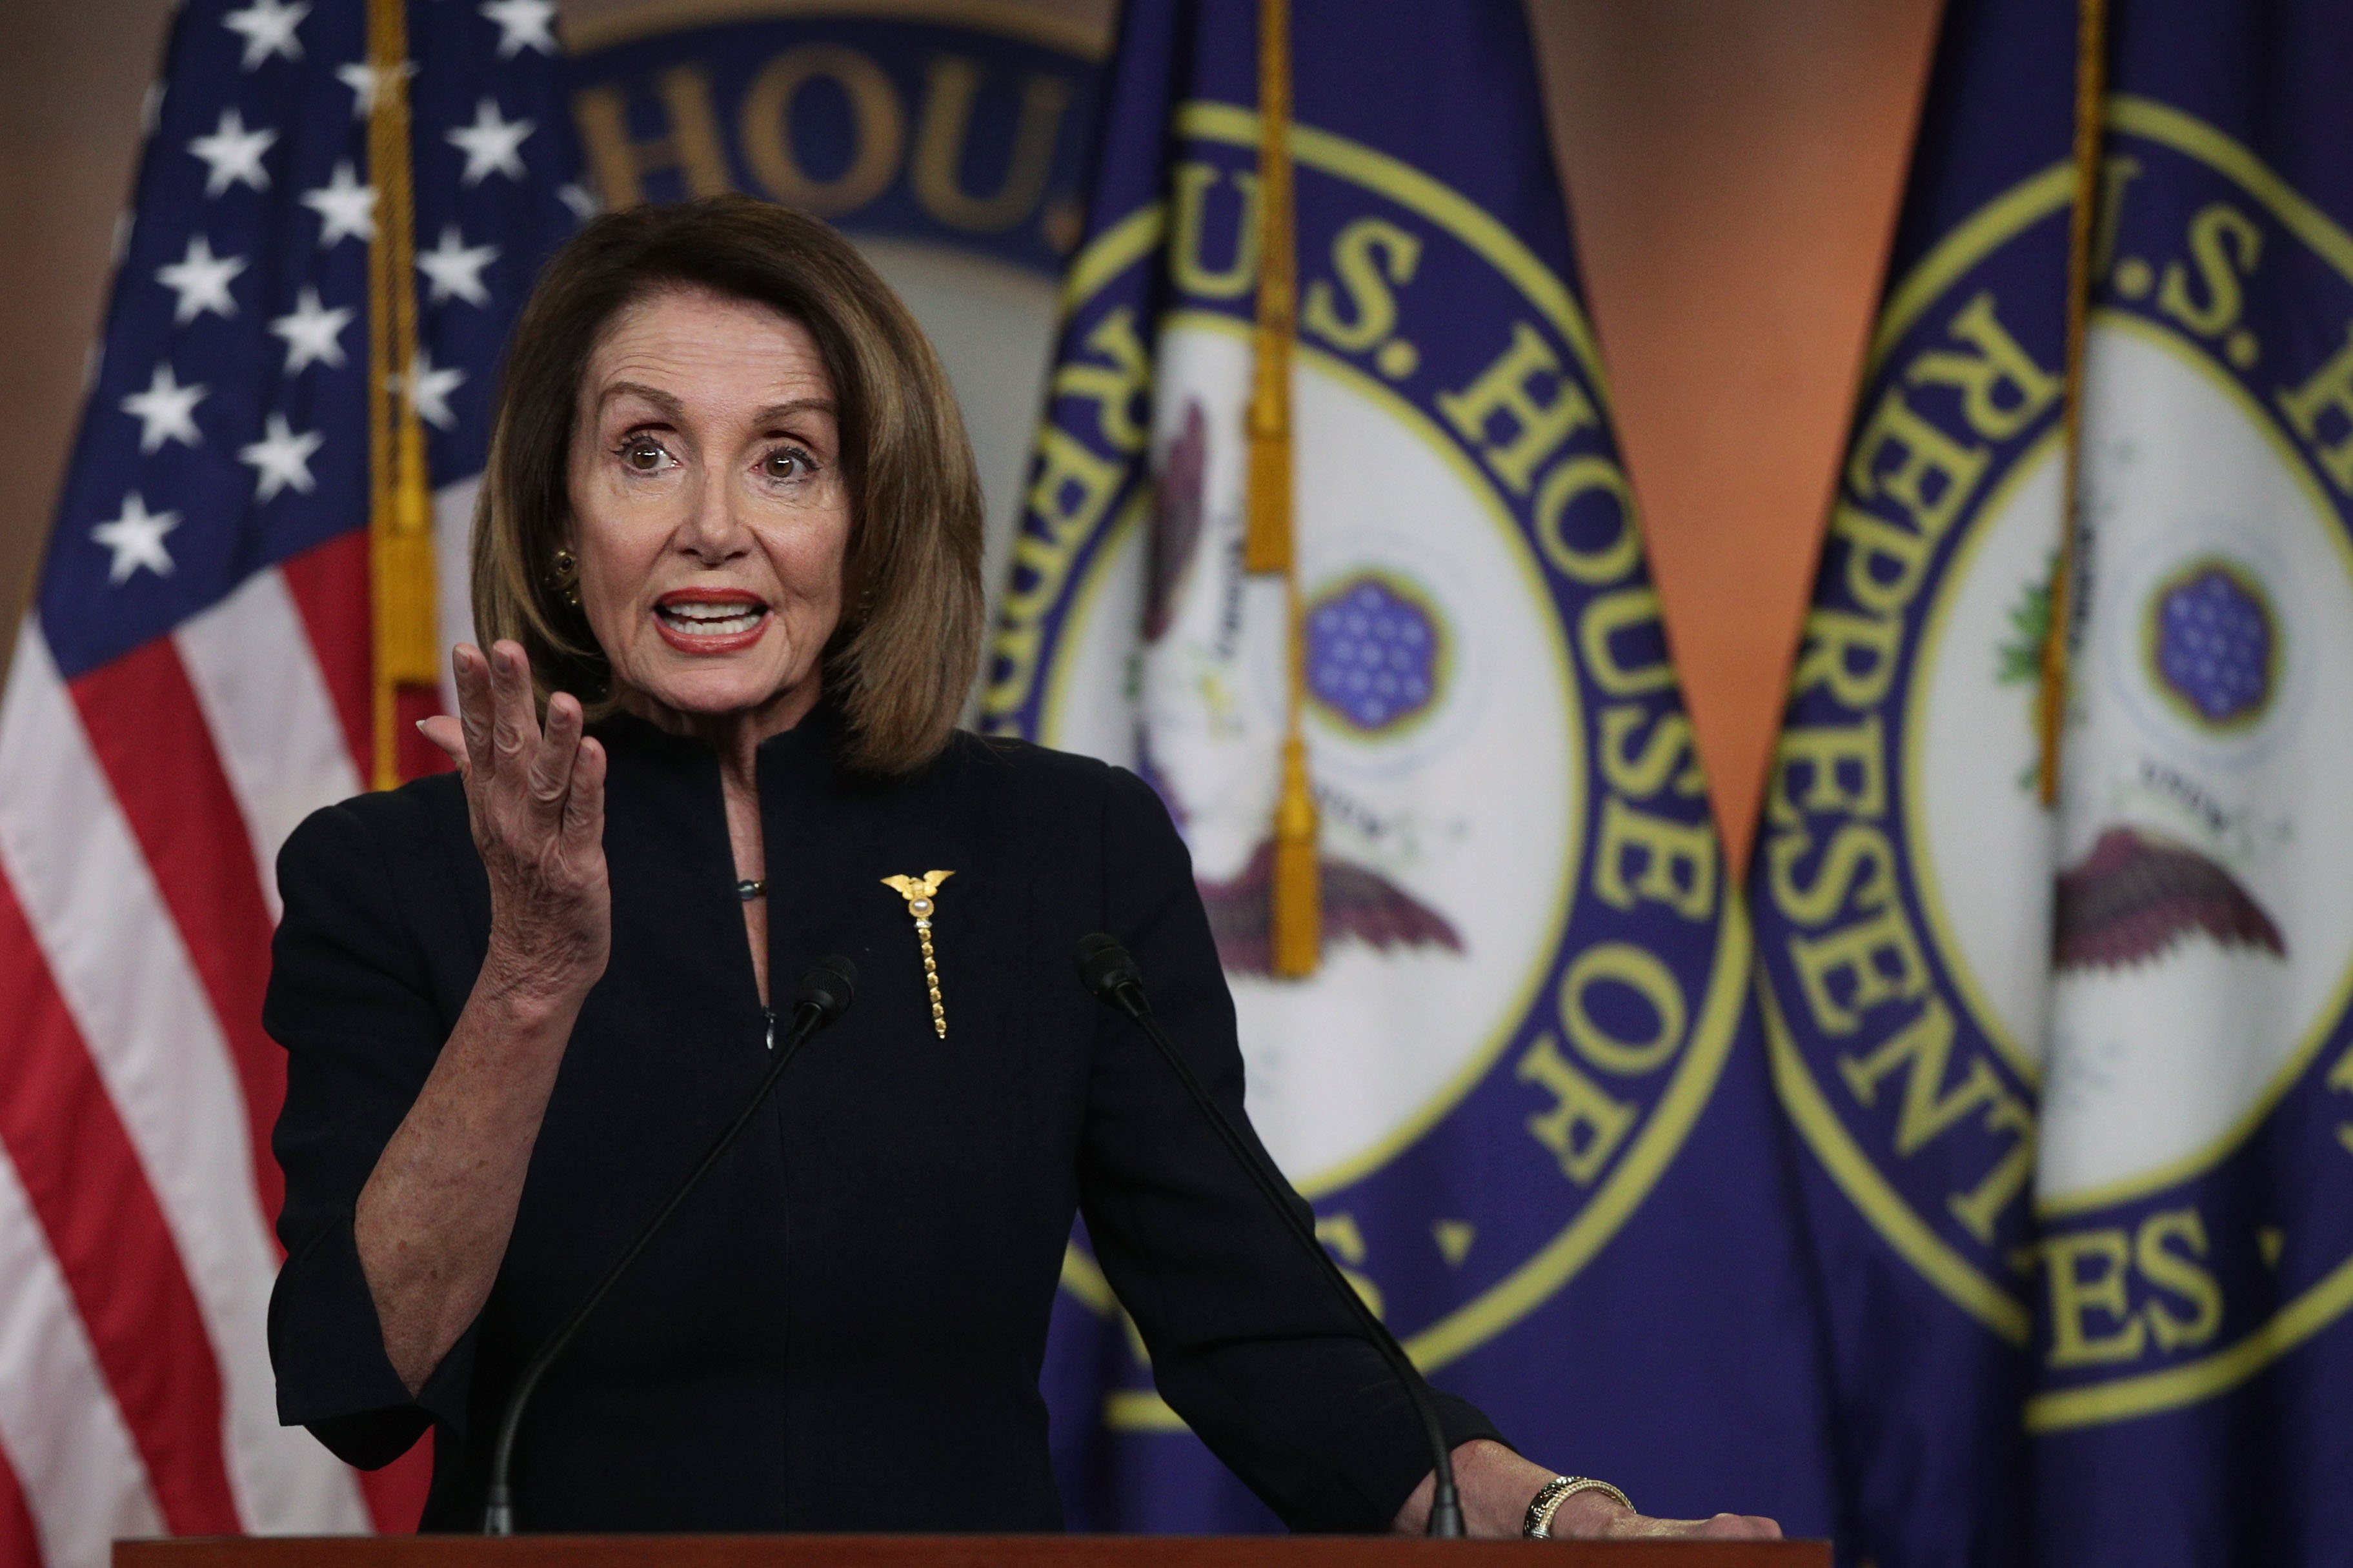 Speaker of the House Nancy Pelosi giving a speech | Photo: Getty Images